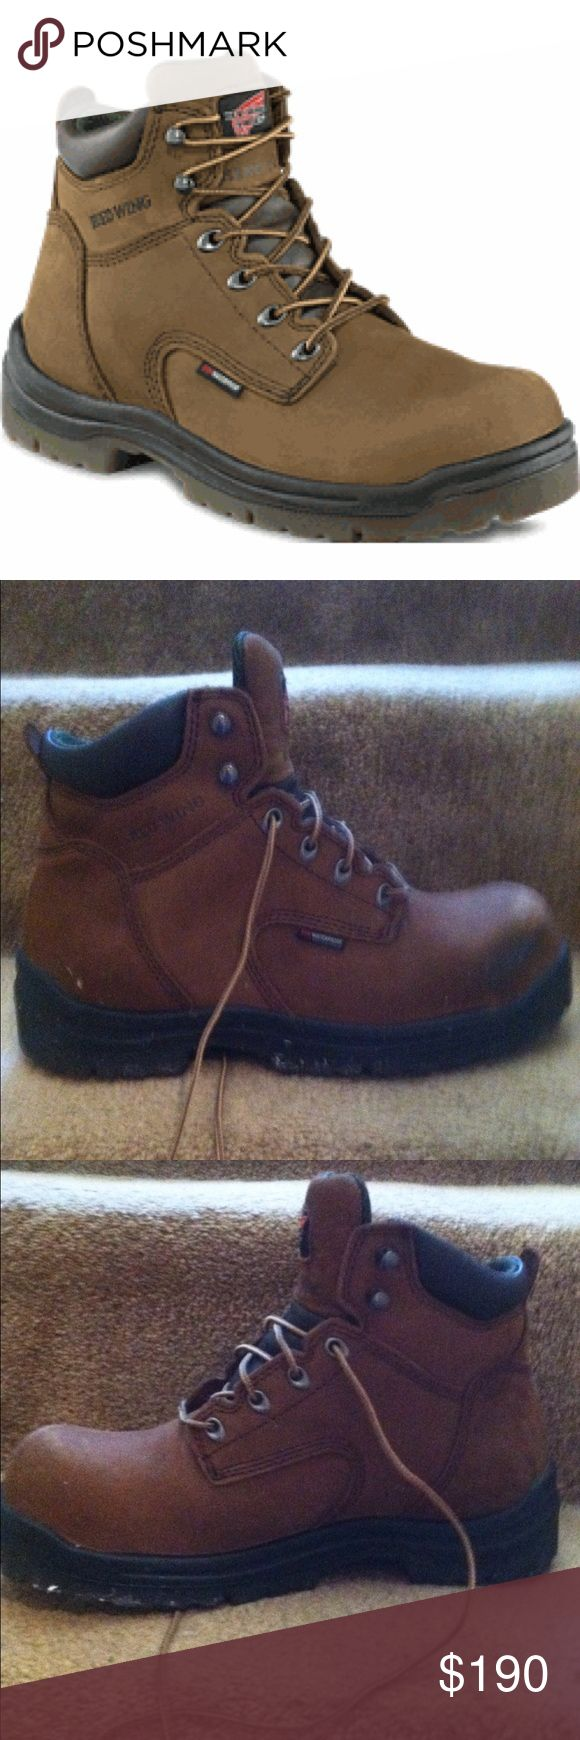 Red Wing King Toe Steel Toe Boots Red Wing Steel Toe Boots - worn Once - Excellent condition!! Comes in box!! Red Wing Shoes Shoes Boots